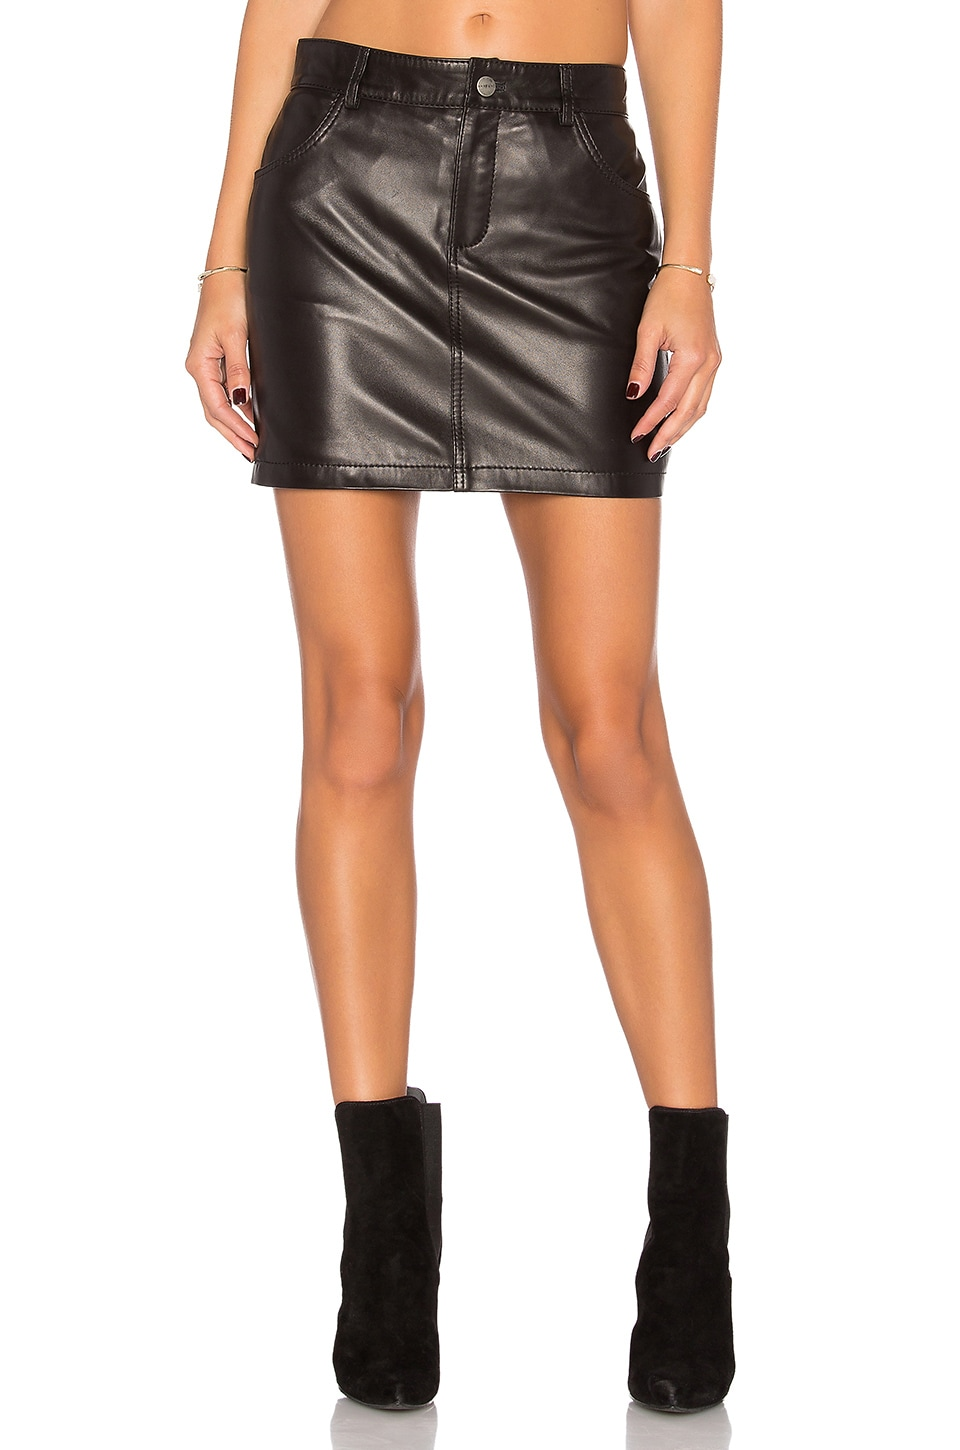 ANINE BING Classic Leather Skirt in Black